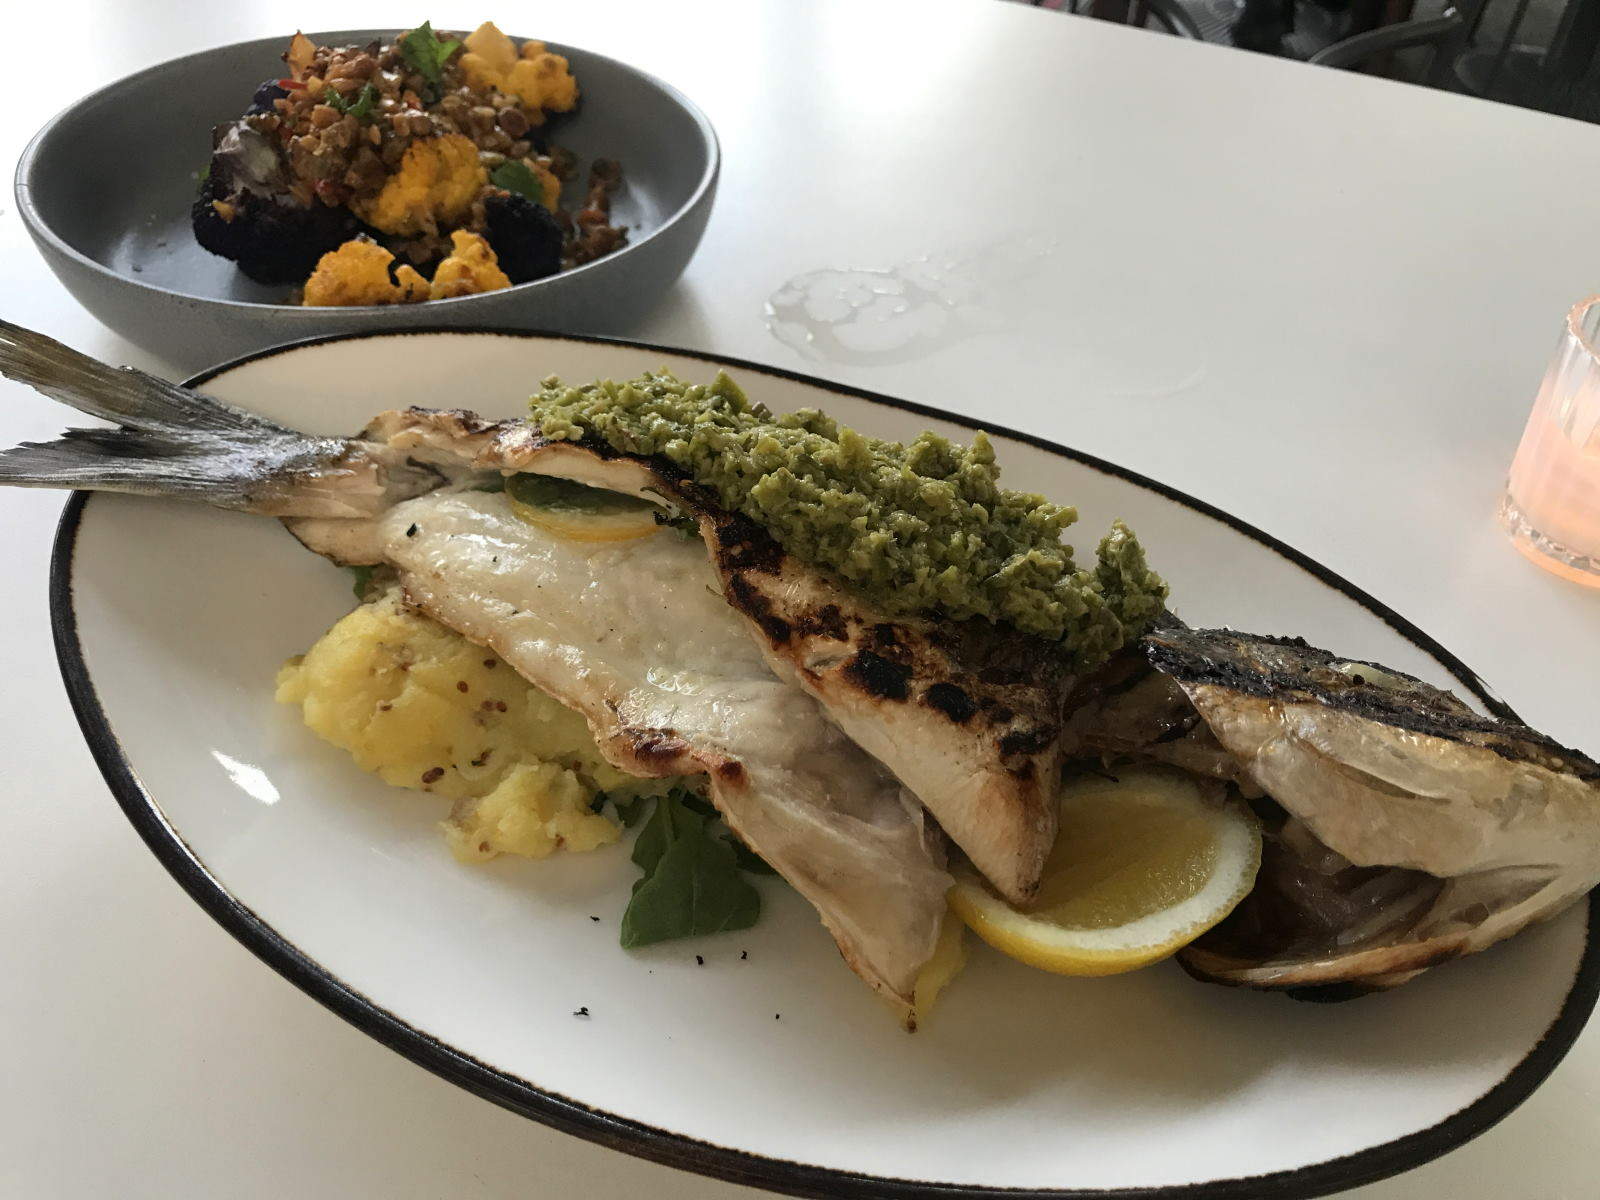 Grilled fish and cauliflower at Rossoblu